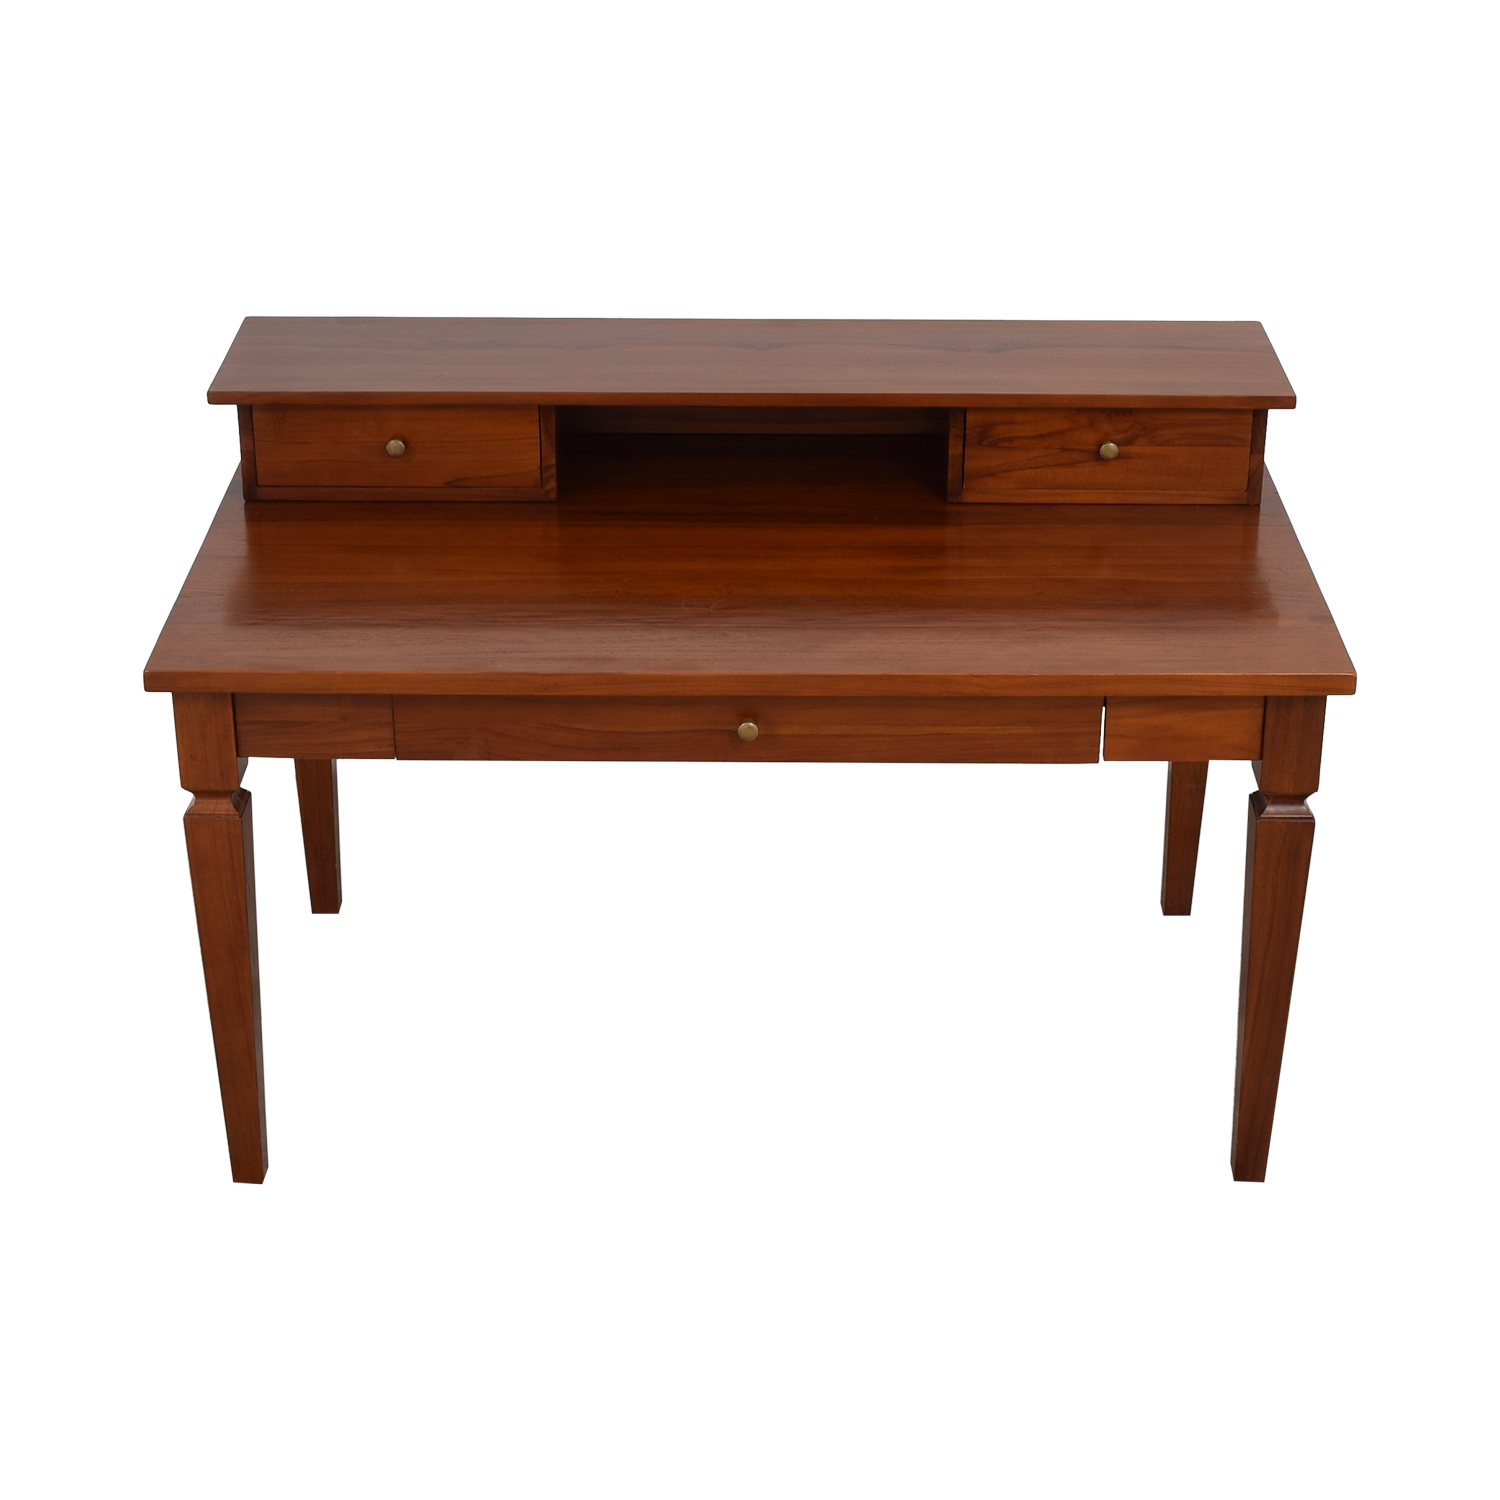 Crate & Barrel Crate & Barrel Desk